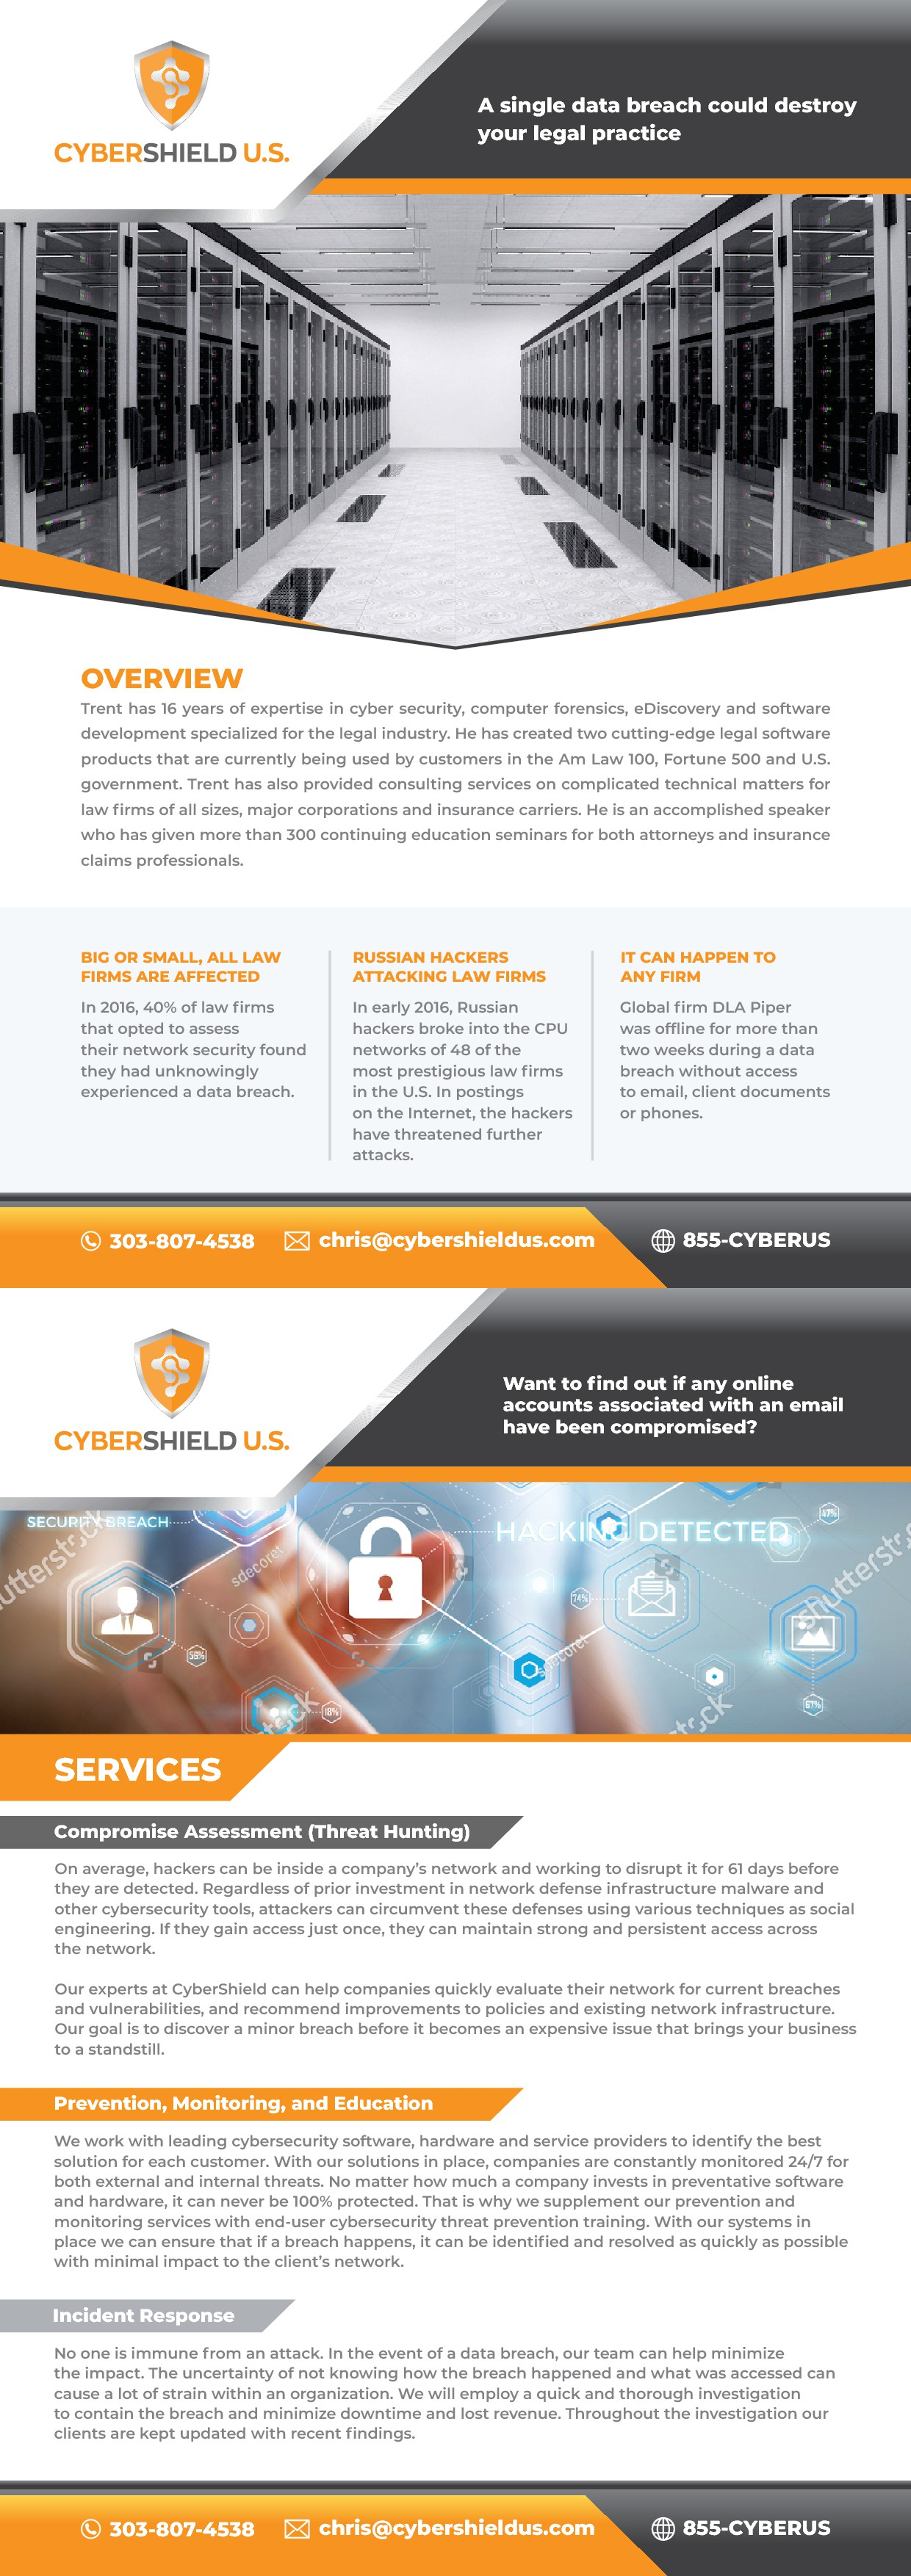 Brochure Design for Cyber-Security Company